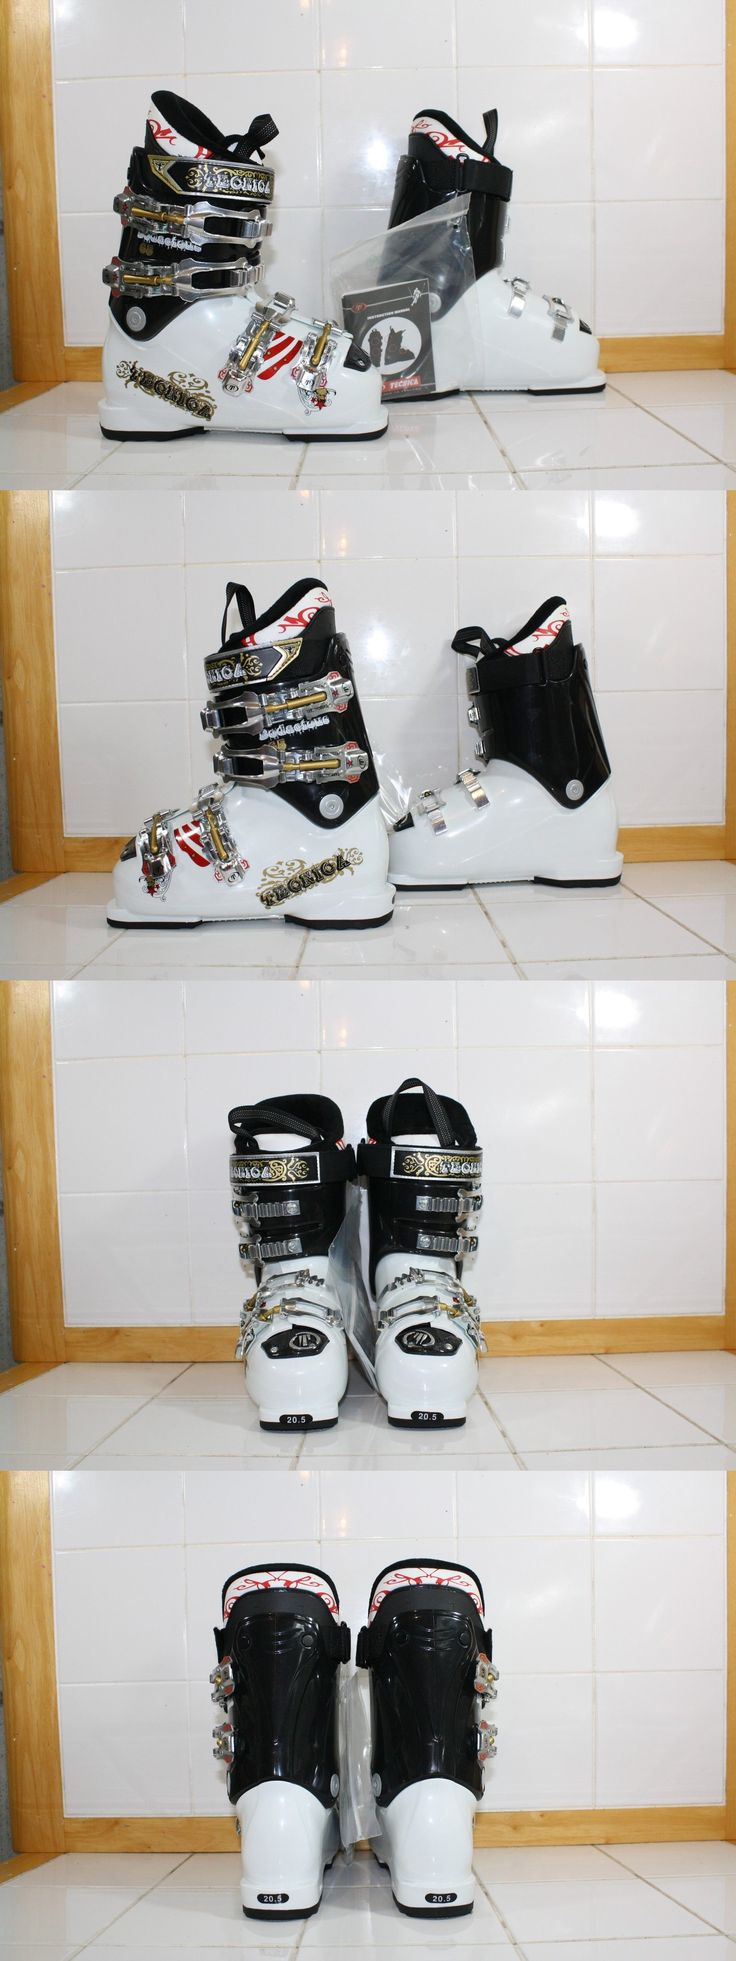 Youth 21240: Tecnica Bodacious Jr Kids Youth Ski Boots 18.5 , 20.5 -> BUY IT NOW ONLY: $89.95 on eBay!